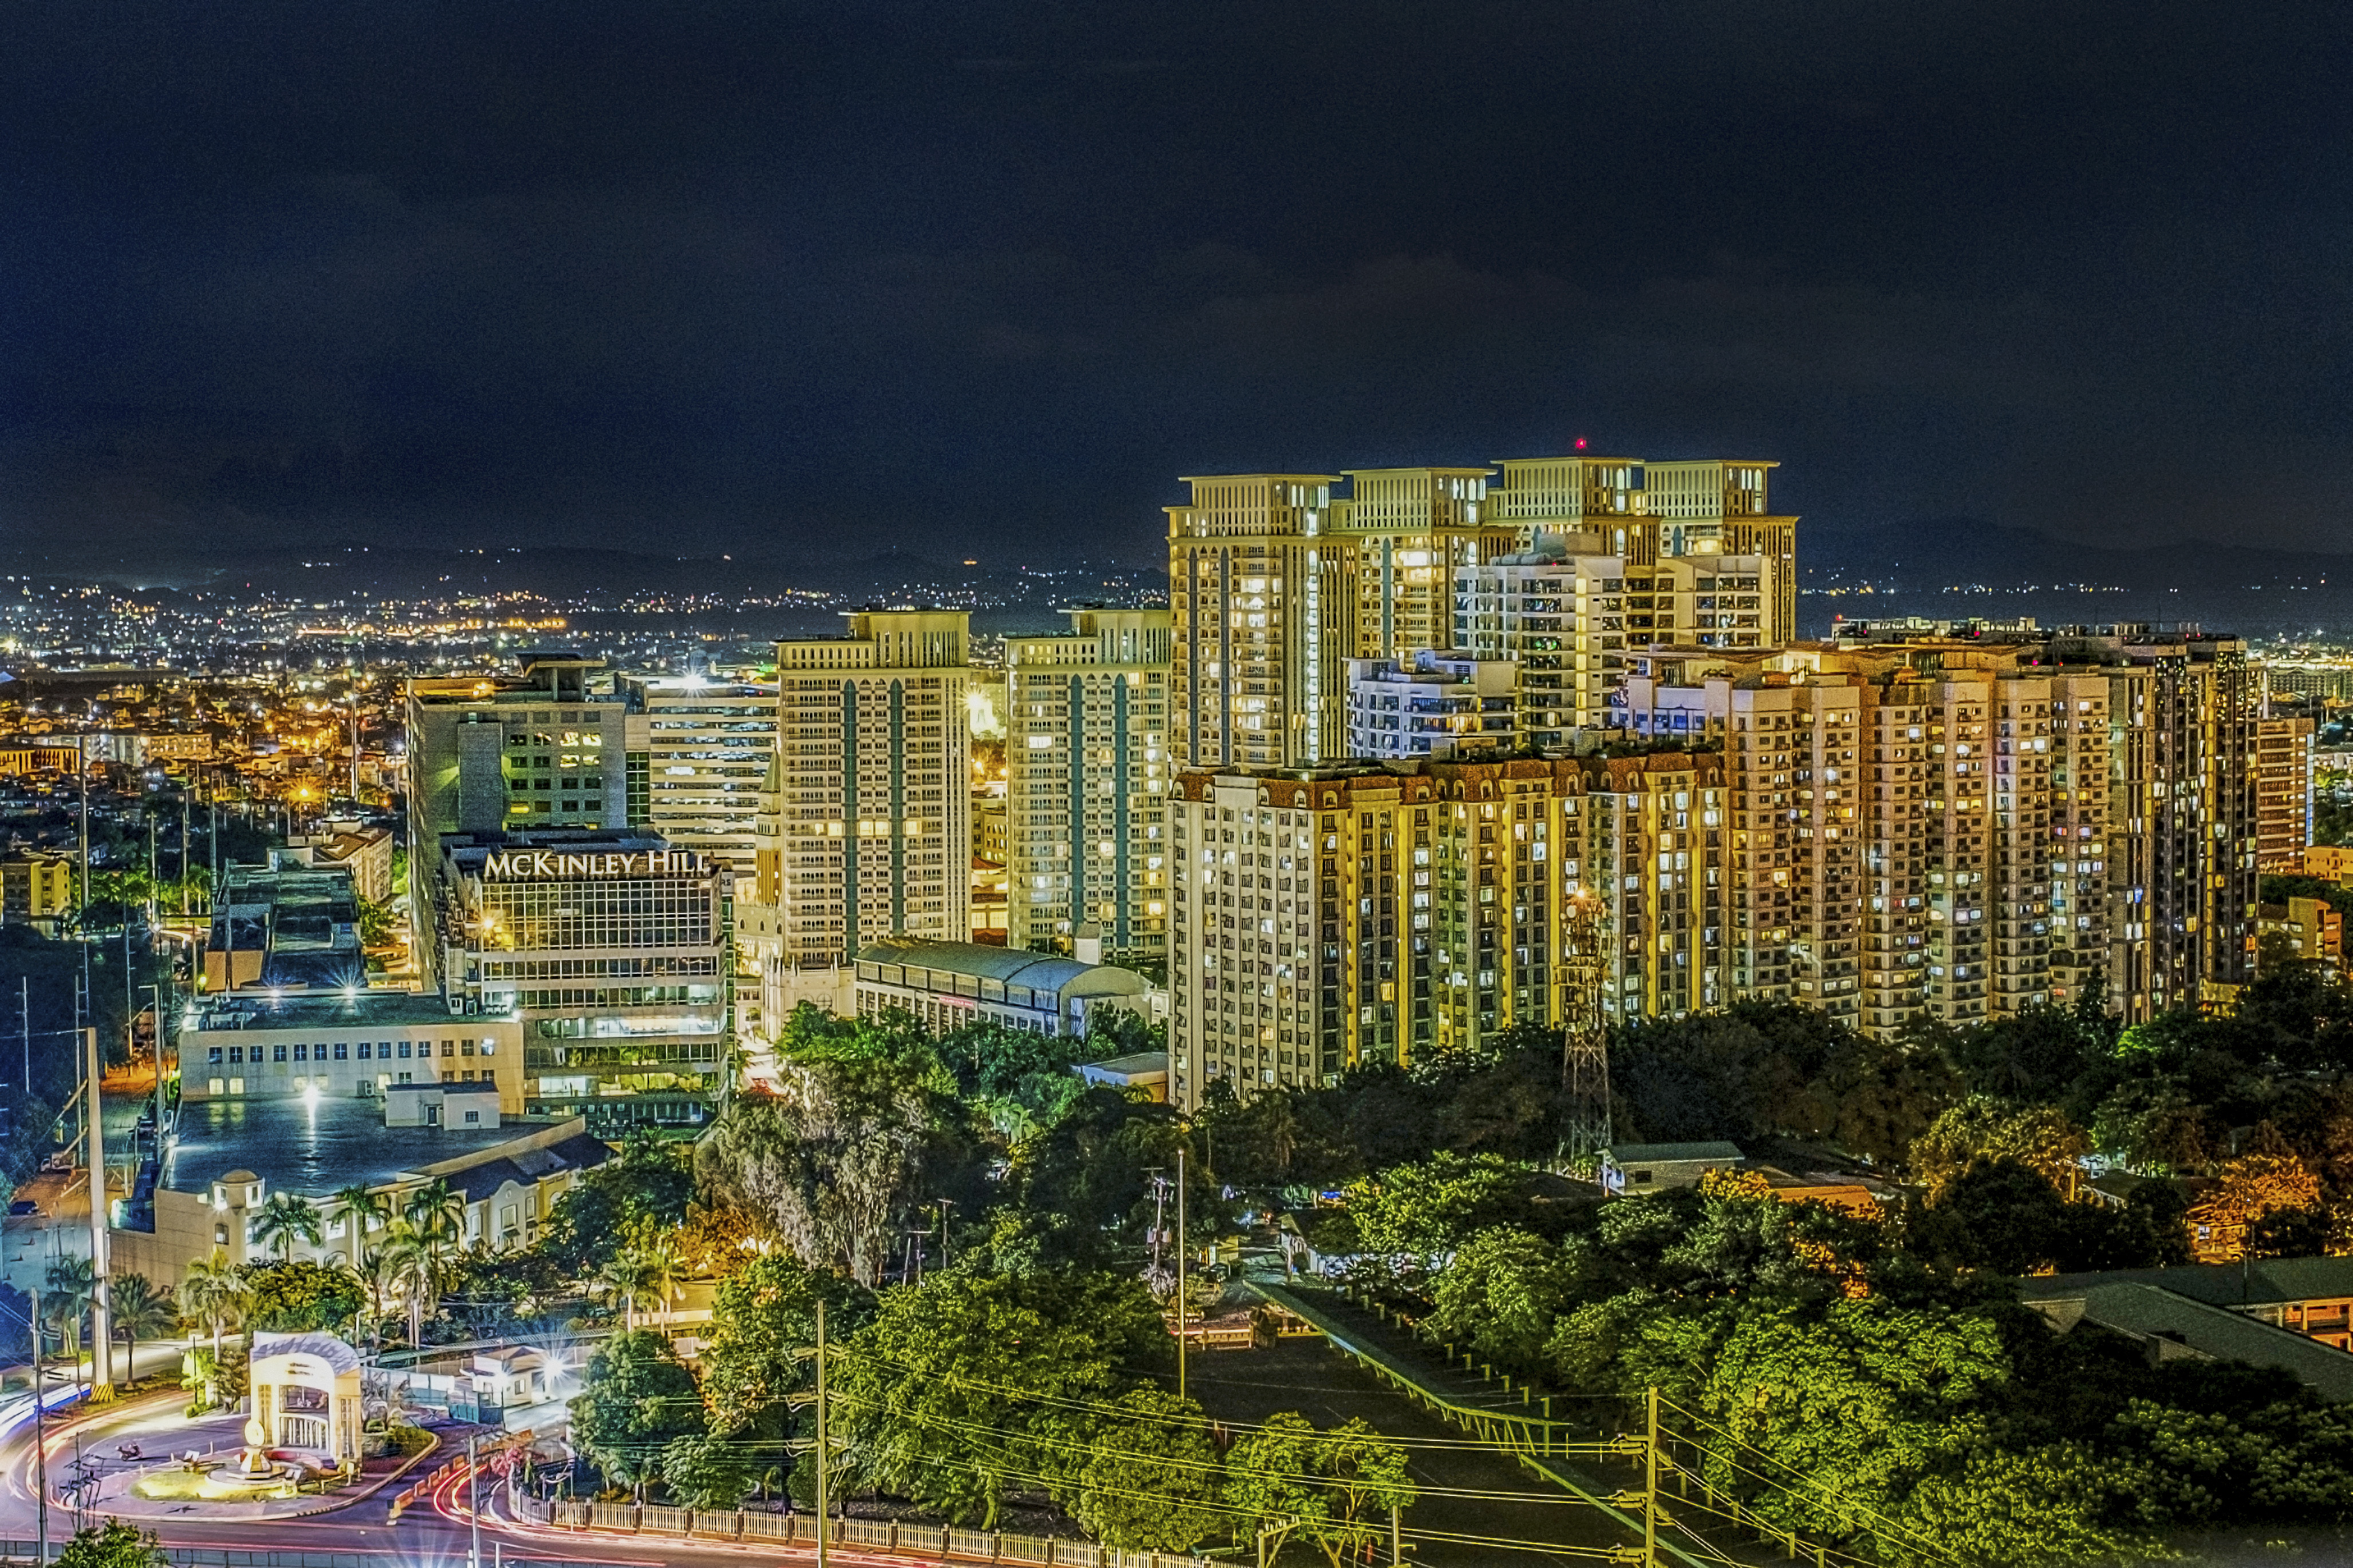 McKinley Hill Night time